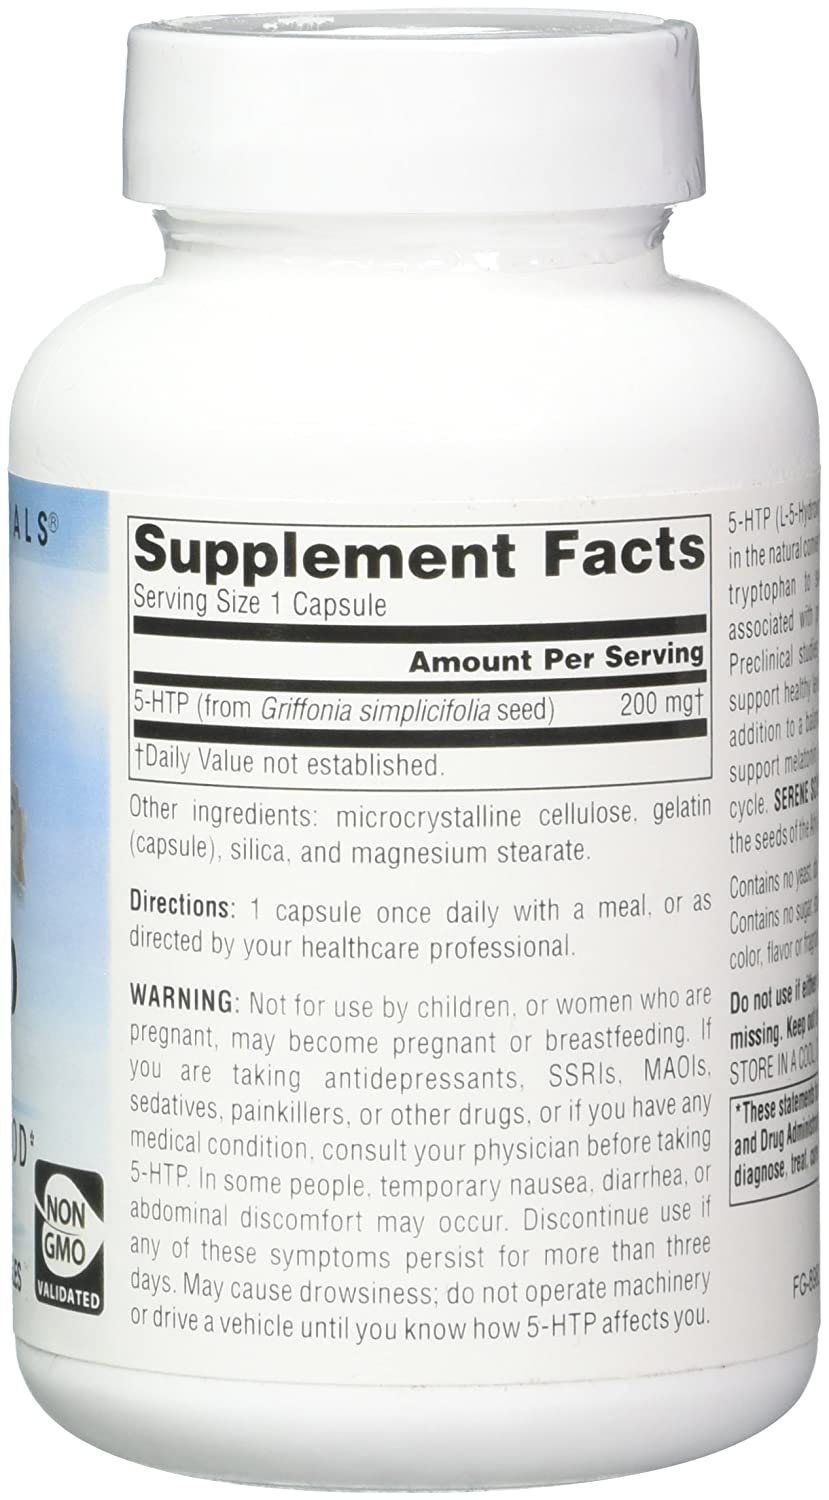 Amazon.com: SOURCE NATURALS Serene Science 5-HTP 200 Mg Capsule, 60 Count: Health & Personal Care